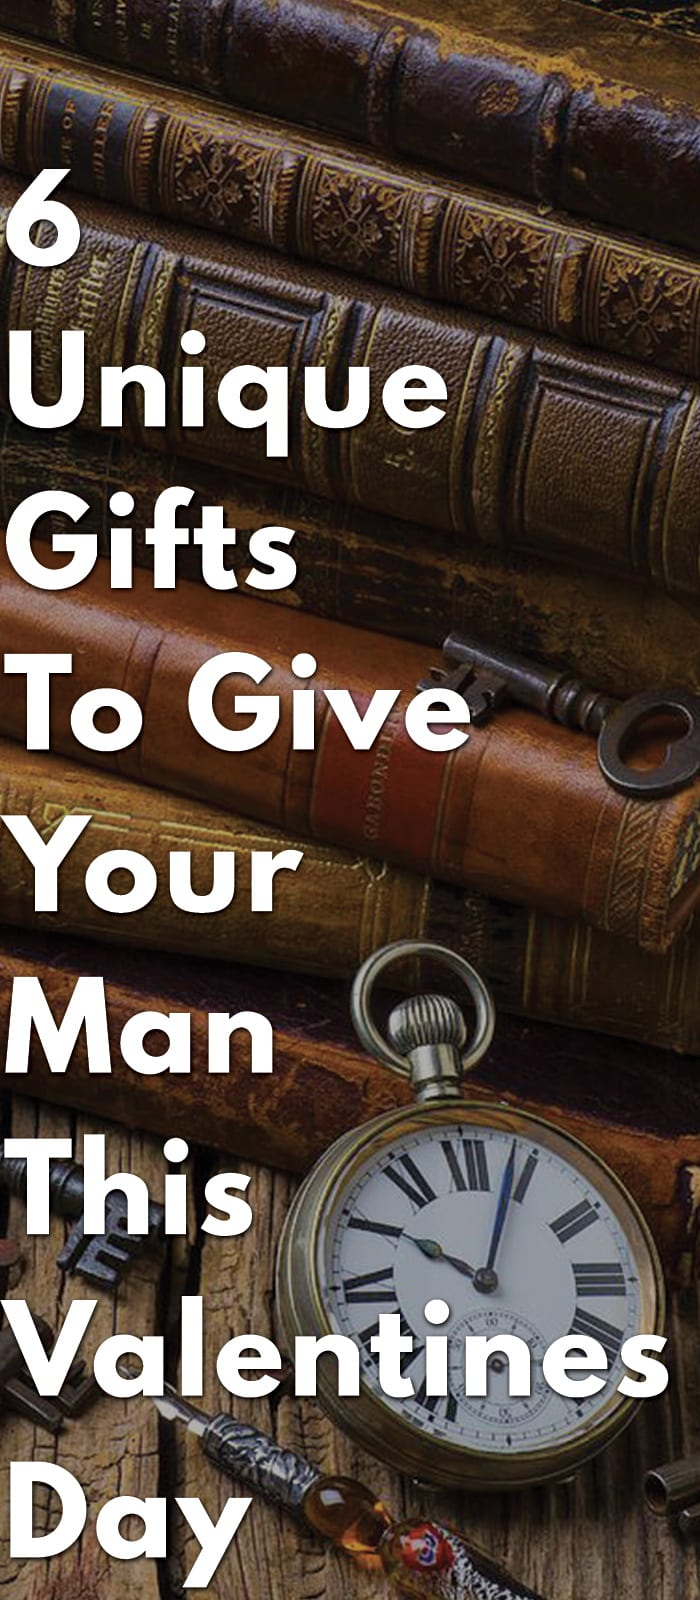 6-Unique-Gifts-To-Give-Your-Man-This-Valentine's-Day